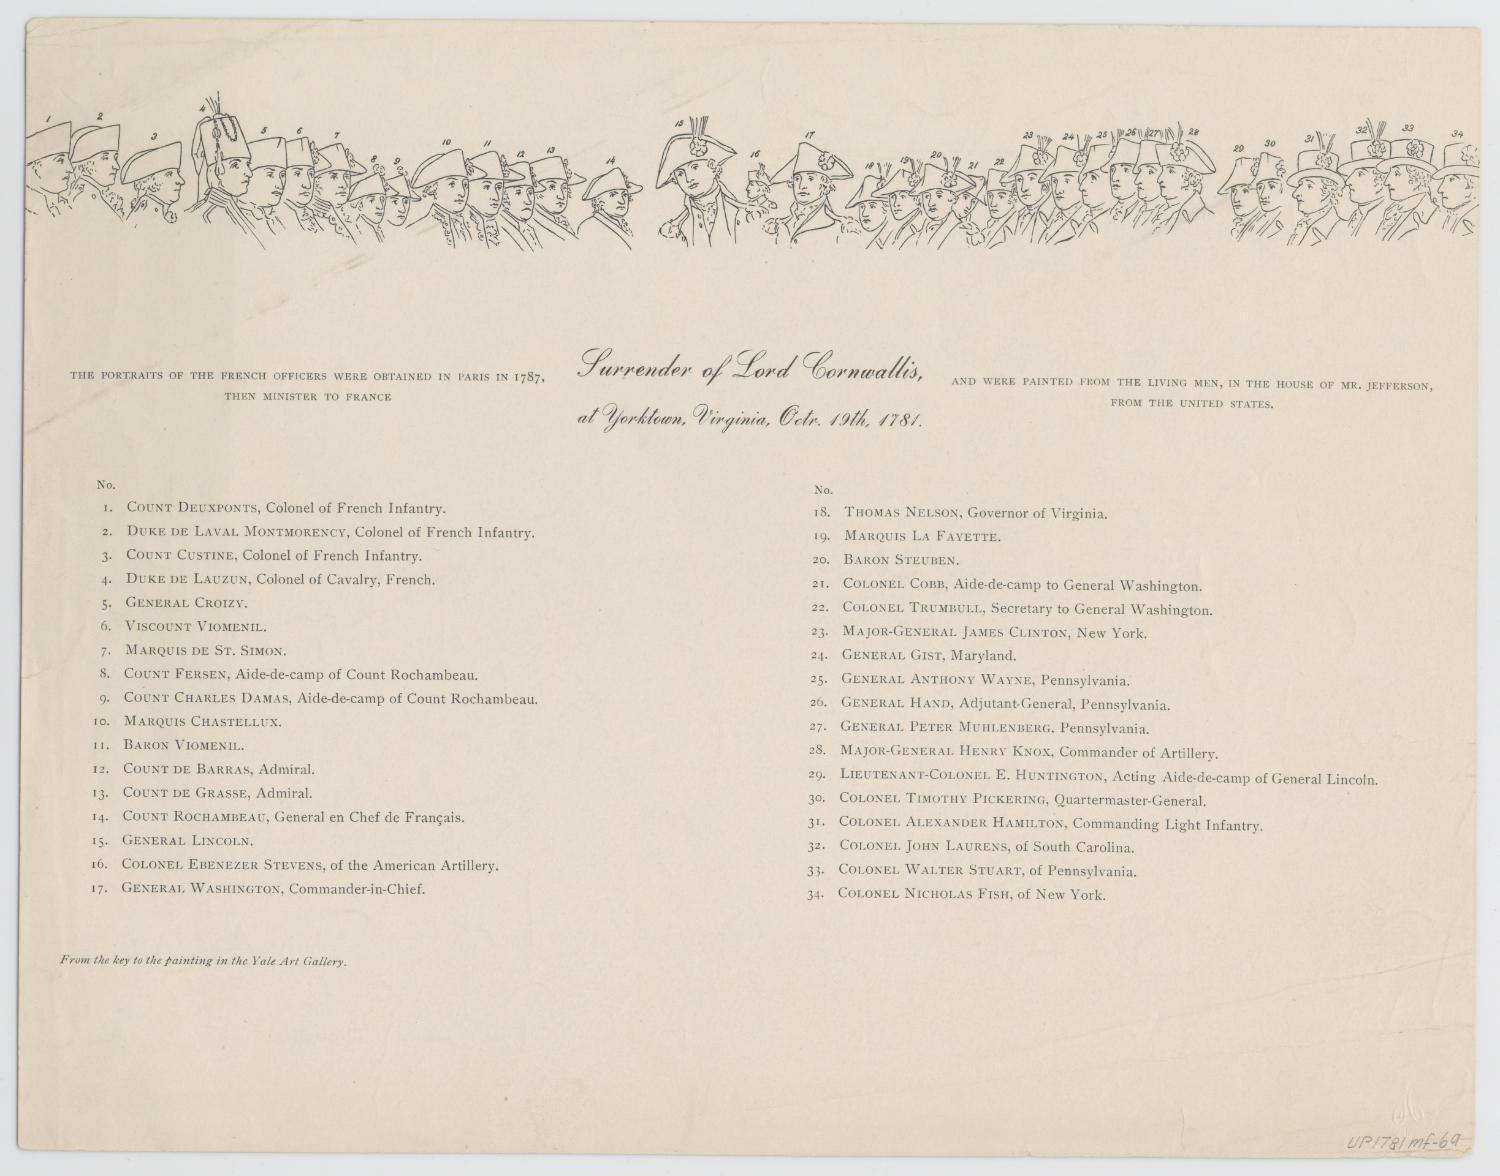 An engraving prepared by John Trumbull containing outlines of the people depicted in his painting, Surrender of Lord Cornwallis with text identifying the American and French participants. From the Anne S. K. Brown Print Collection at Brown University.